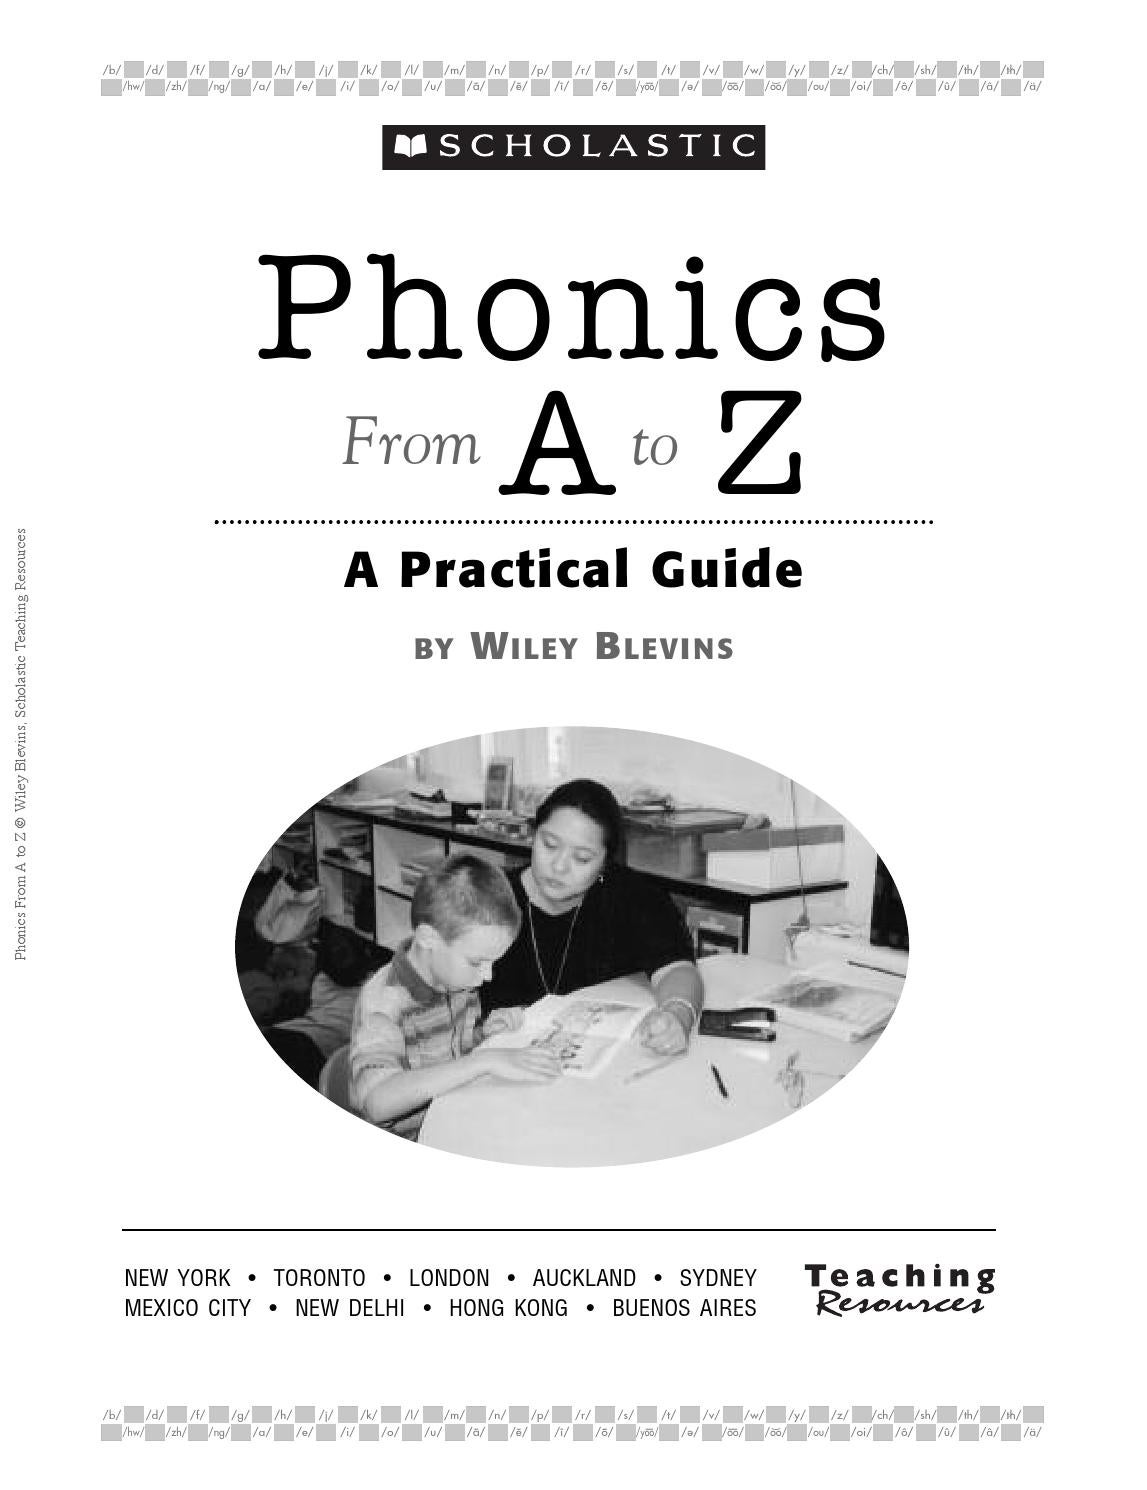 Phonics from A to Z by Wiley Blevins 1st. Edition by Allison Hall ...